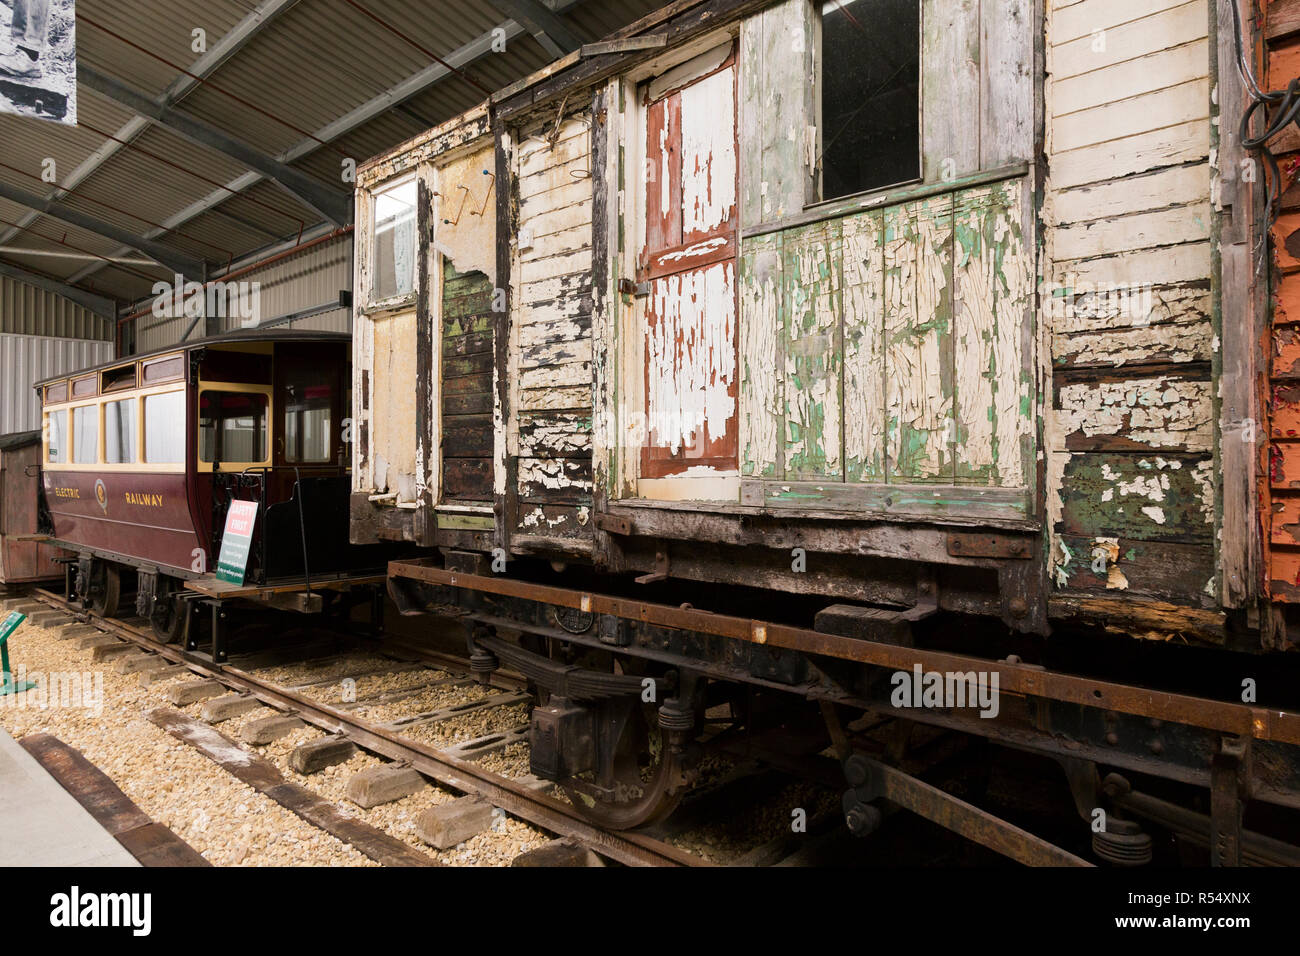 Old and vintage railway carriages / carriage awaiting restoration and refurbishment, in the Train Story museum main area at Havenstreet / Haven street station on the Isle of Wight steam Railway railway. Isle of Wight, UK. (98) Stock Photo